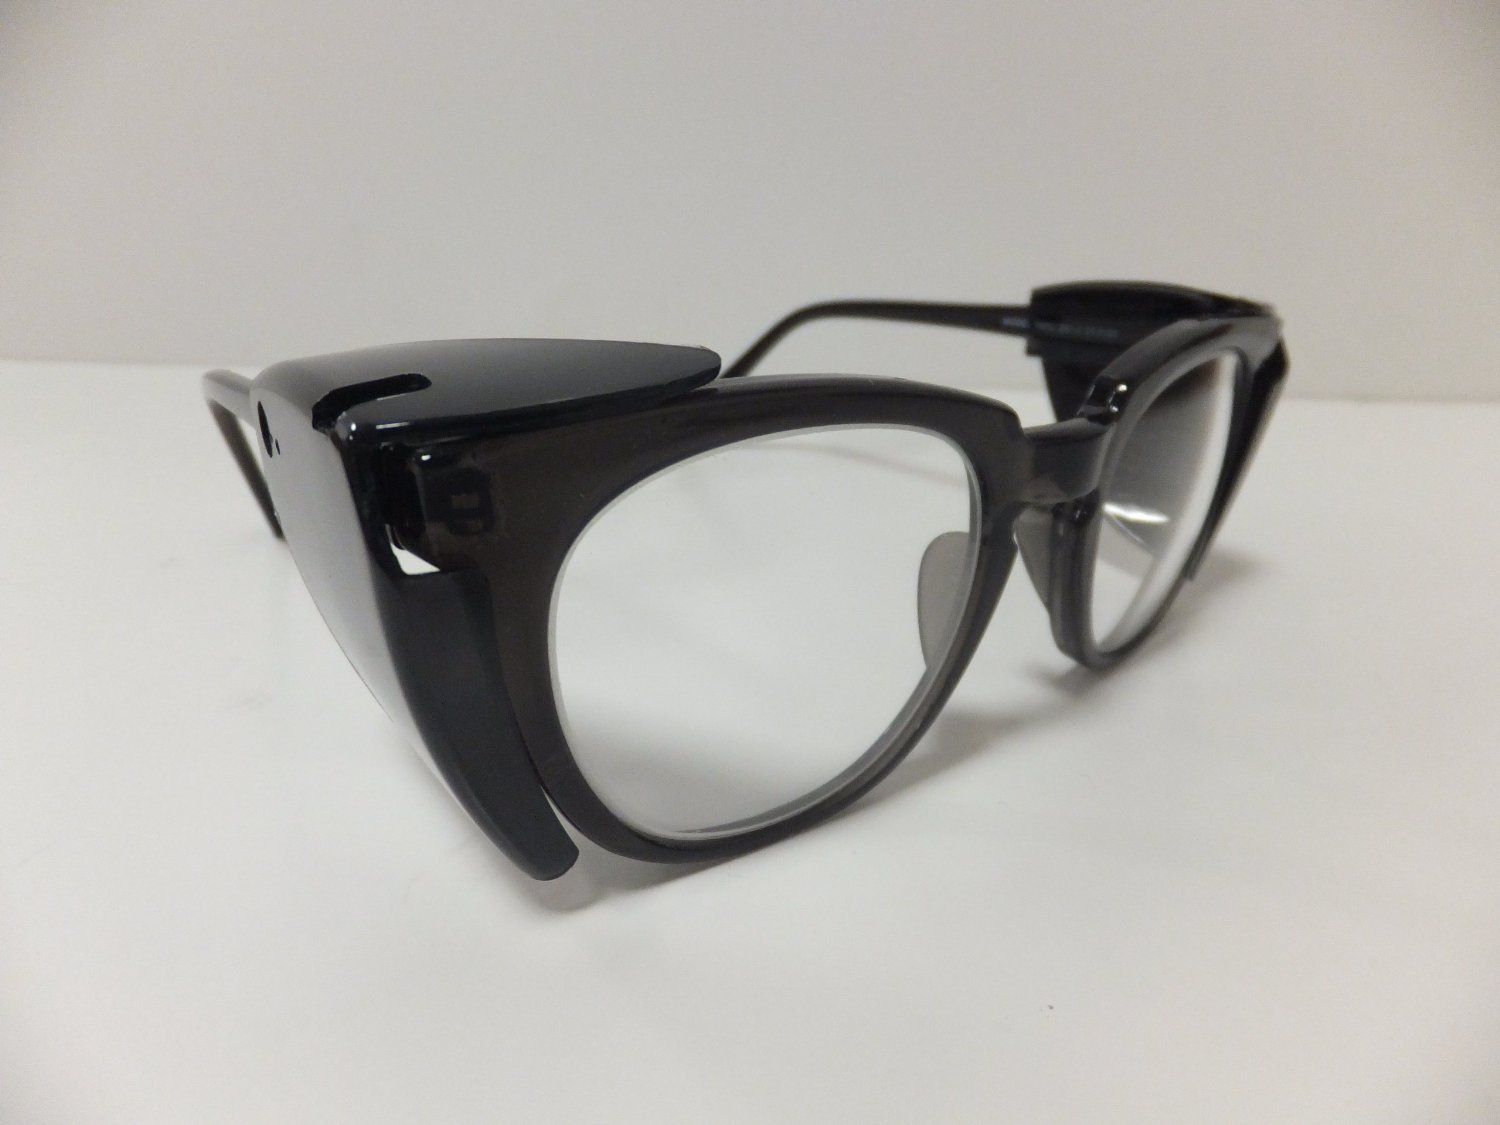 Radiation Safety Glasses in a Titmus Frame with .75 Pb Lead Lens by Phillips Safety